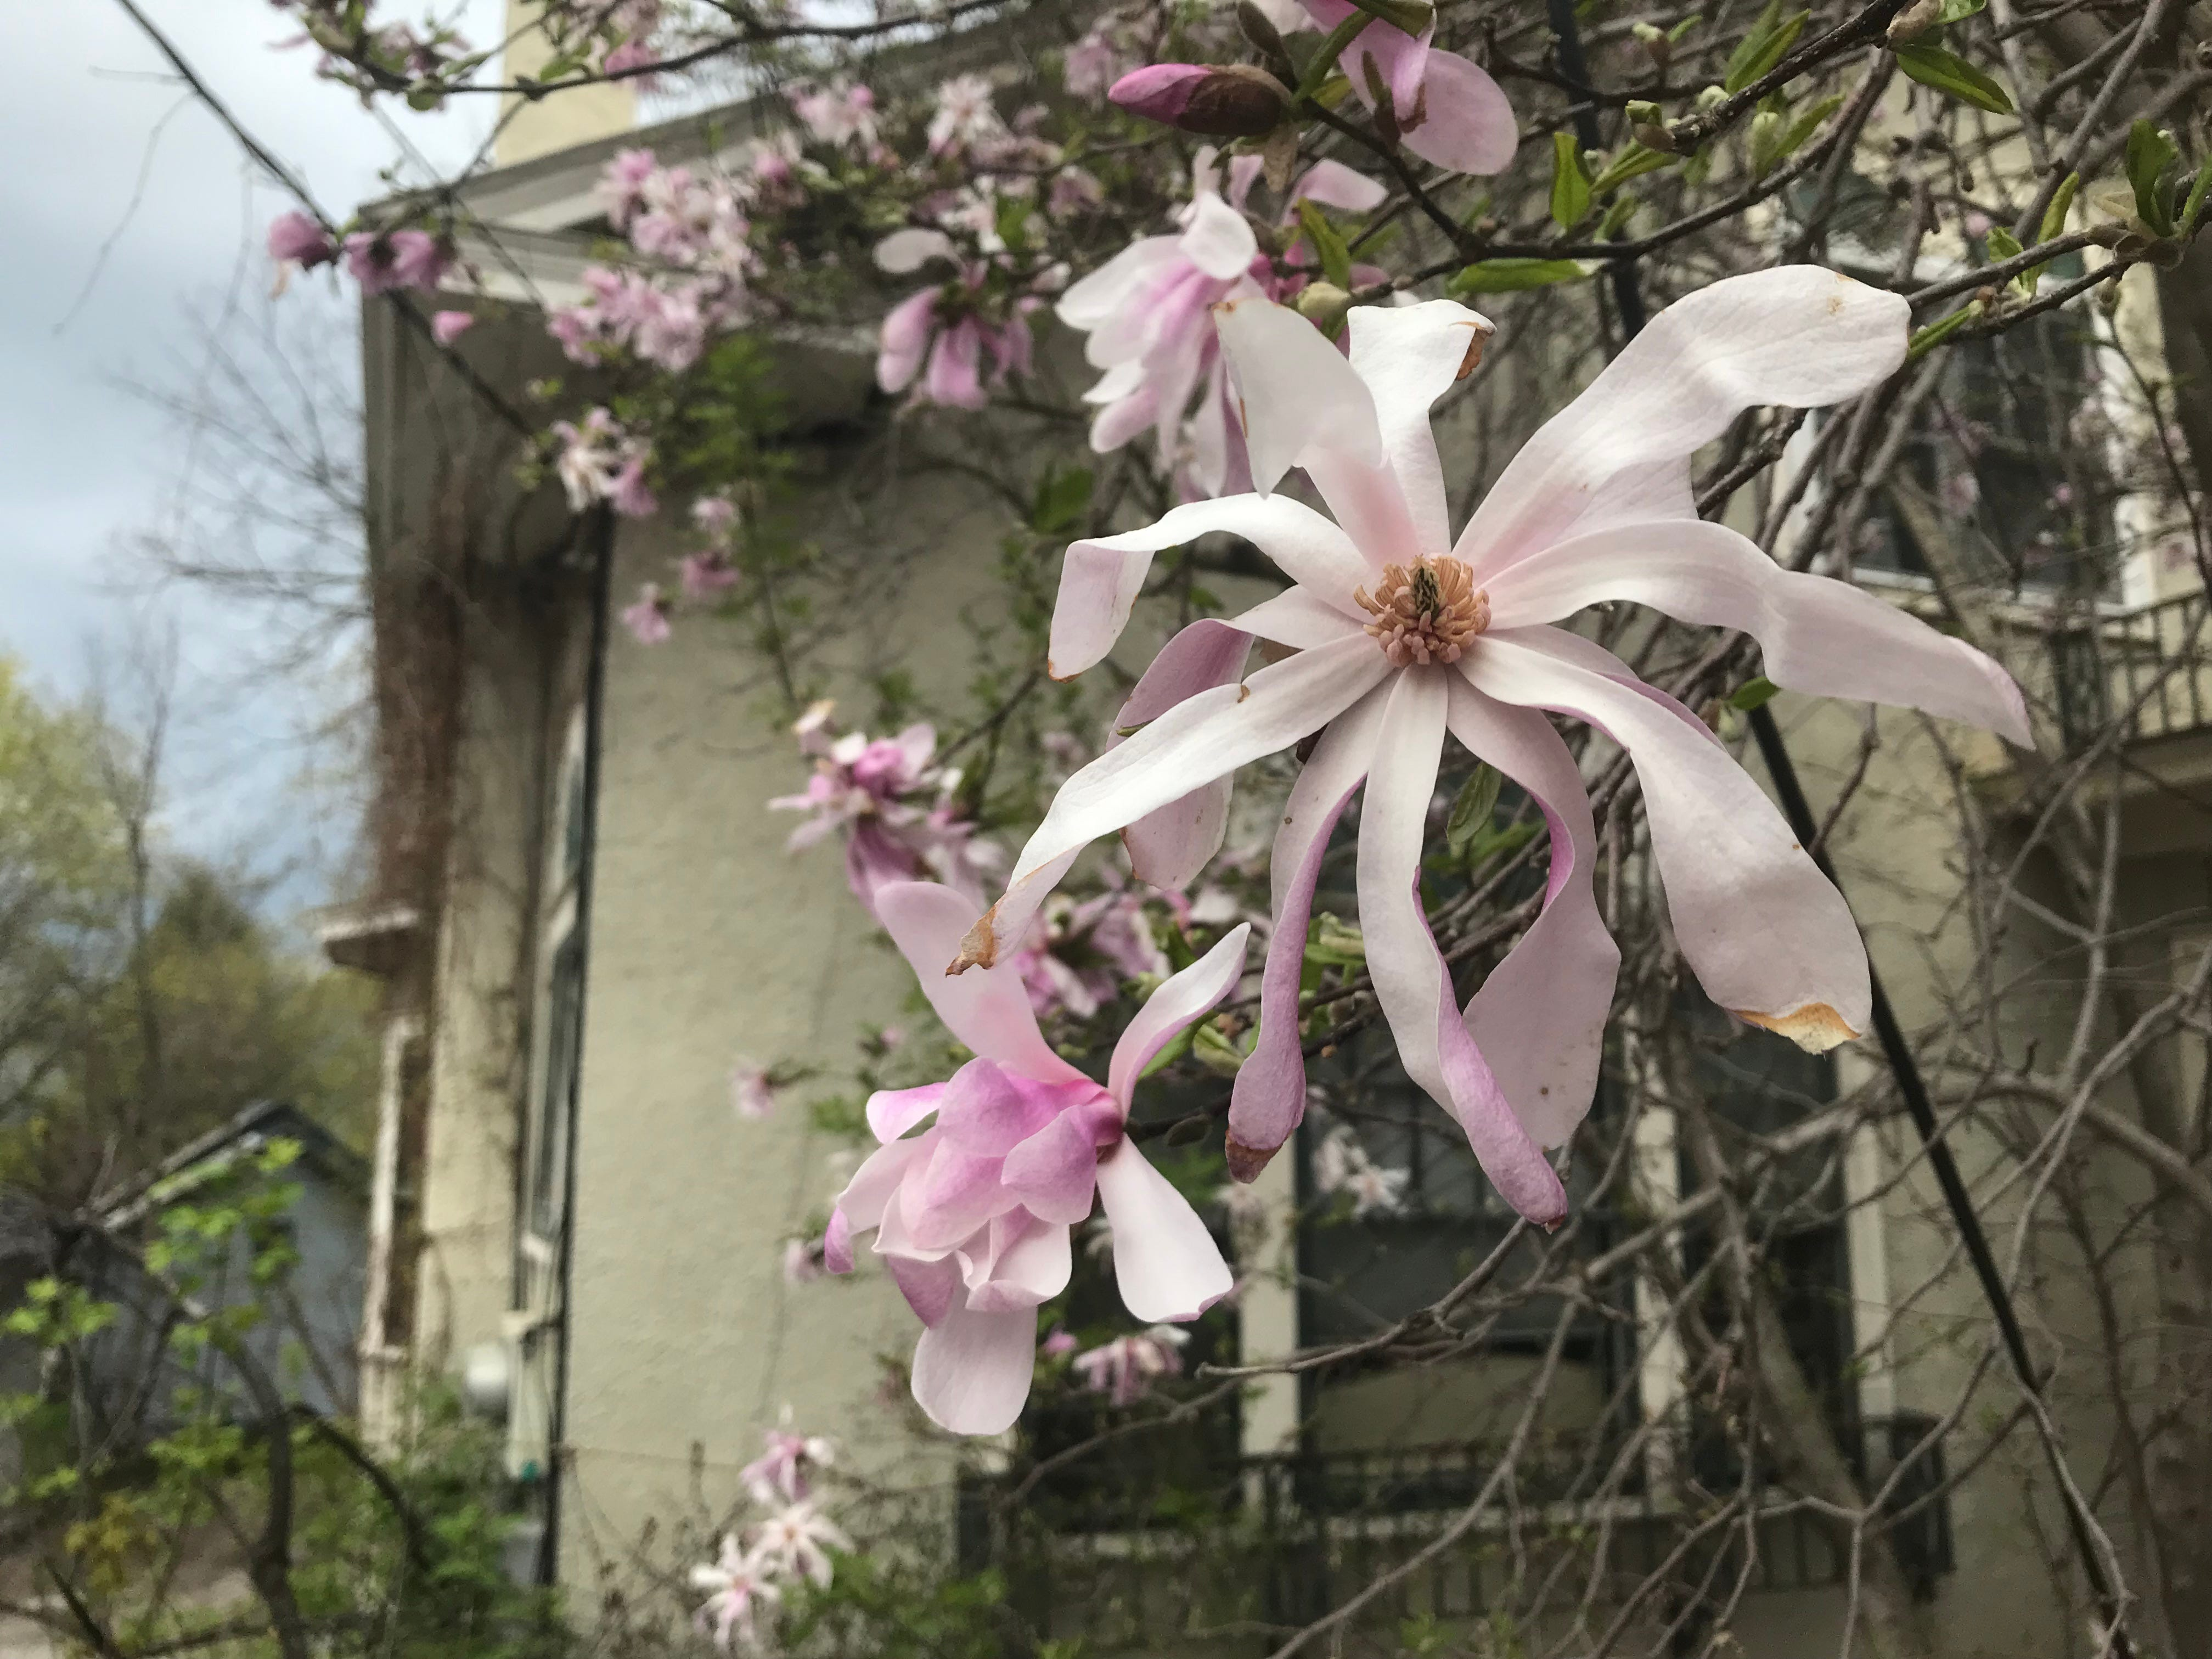 Ripening magnolia blossoms brighten a tree on South Winooski Avenue in Burlington on Tuesday, May 7, 2019.